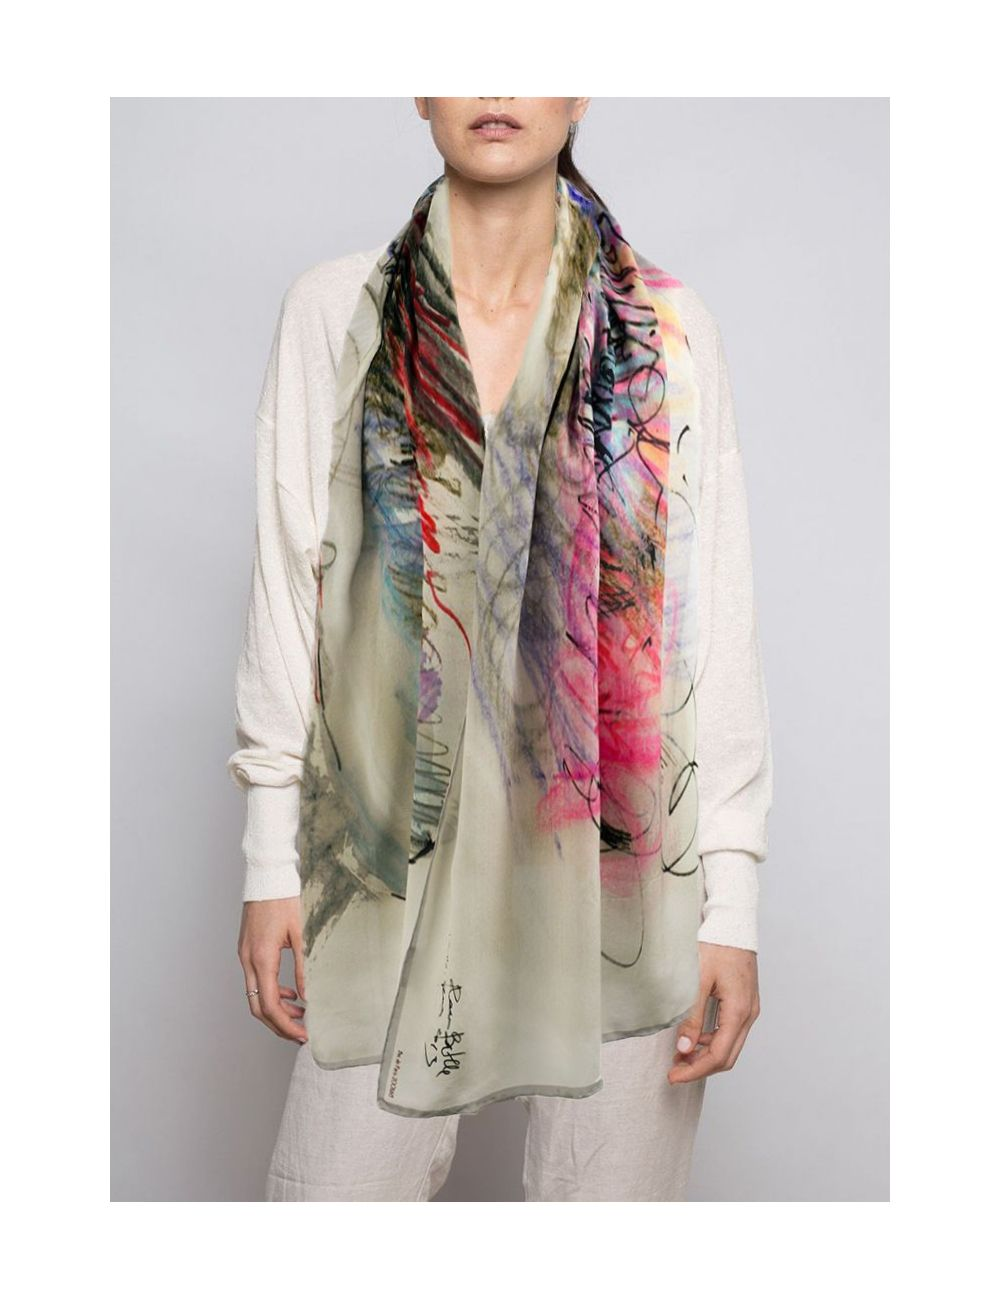 Crepe Chine Silk scarf